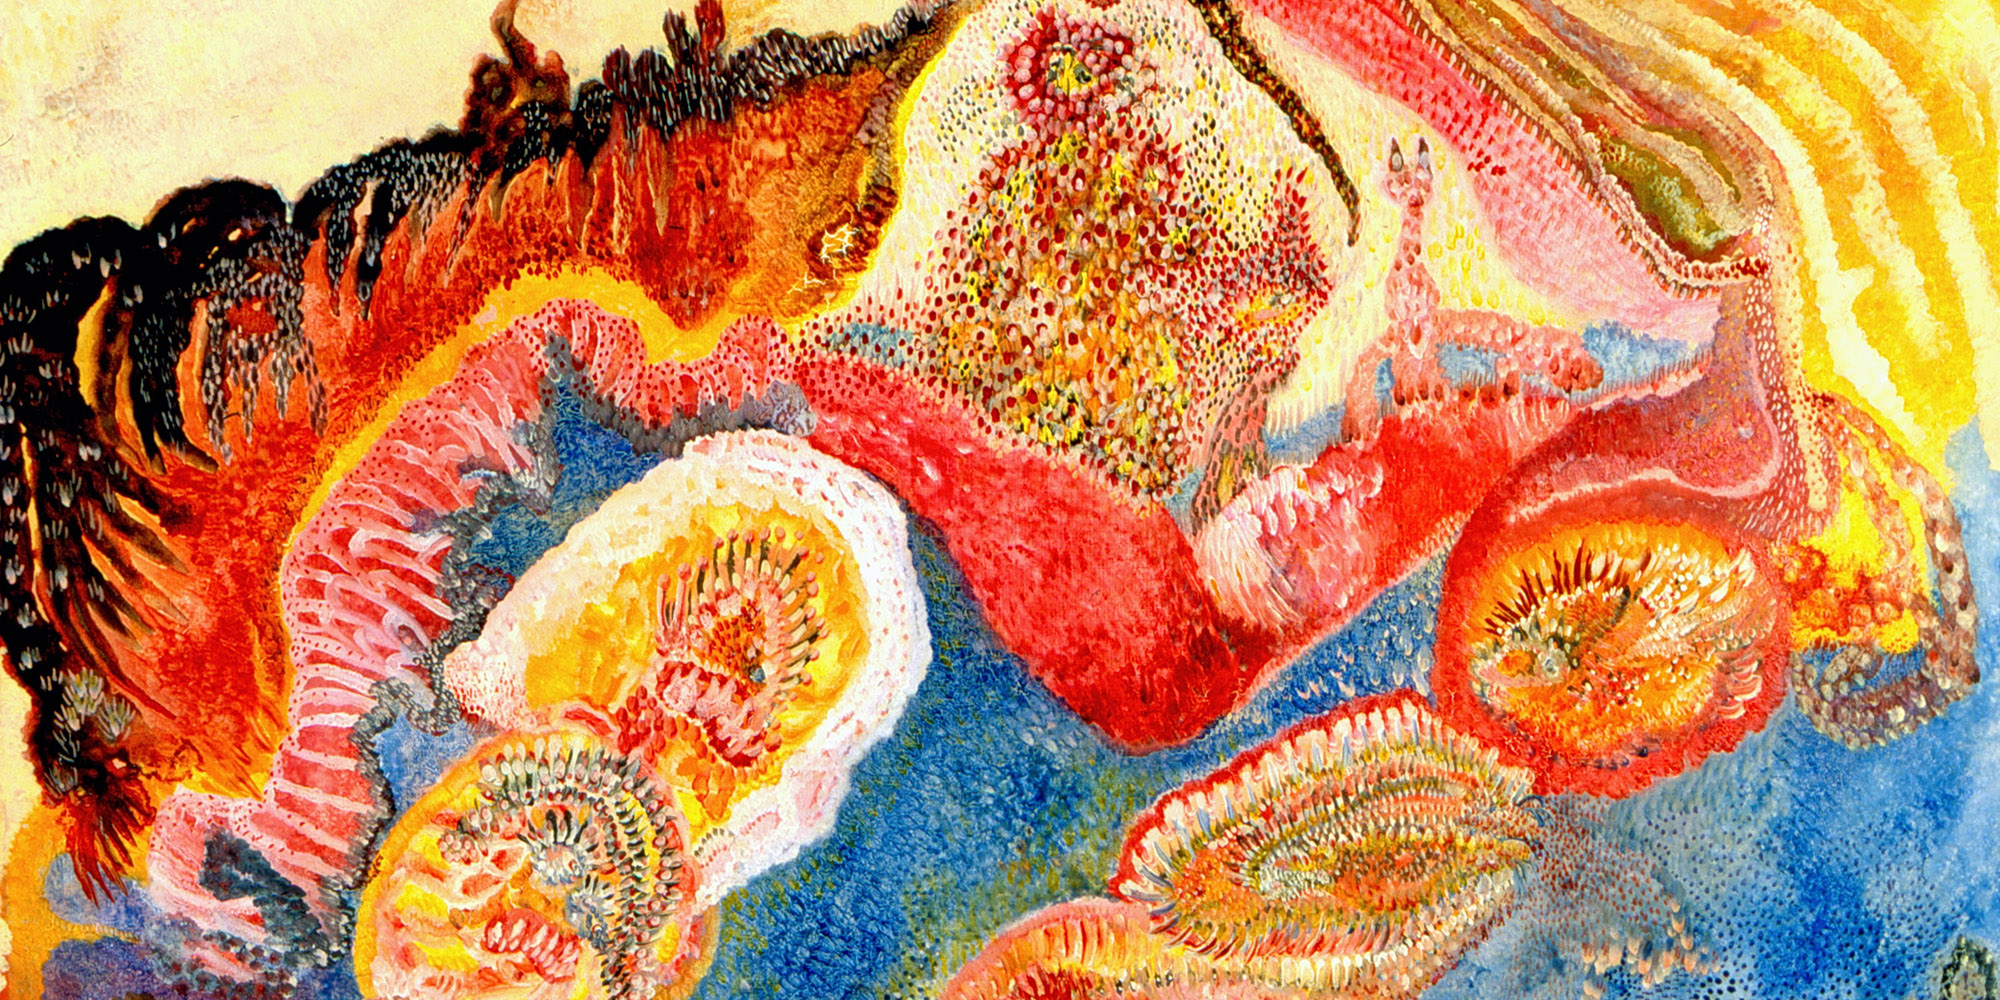 A piece with several circular shapes, appearing as flower-like figures in yellow, red, and pink. The shapes are surrounded by blue color, with a black swirl of color on the left. What appears to be a human-like figure sits in the center of the piece, as if above or on top of water.